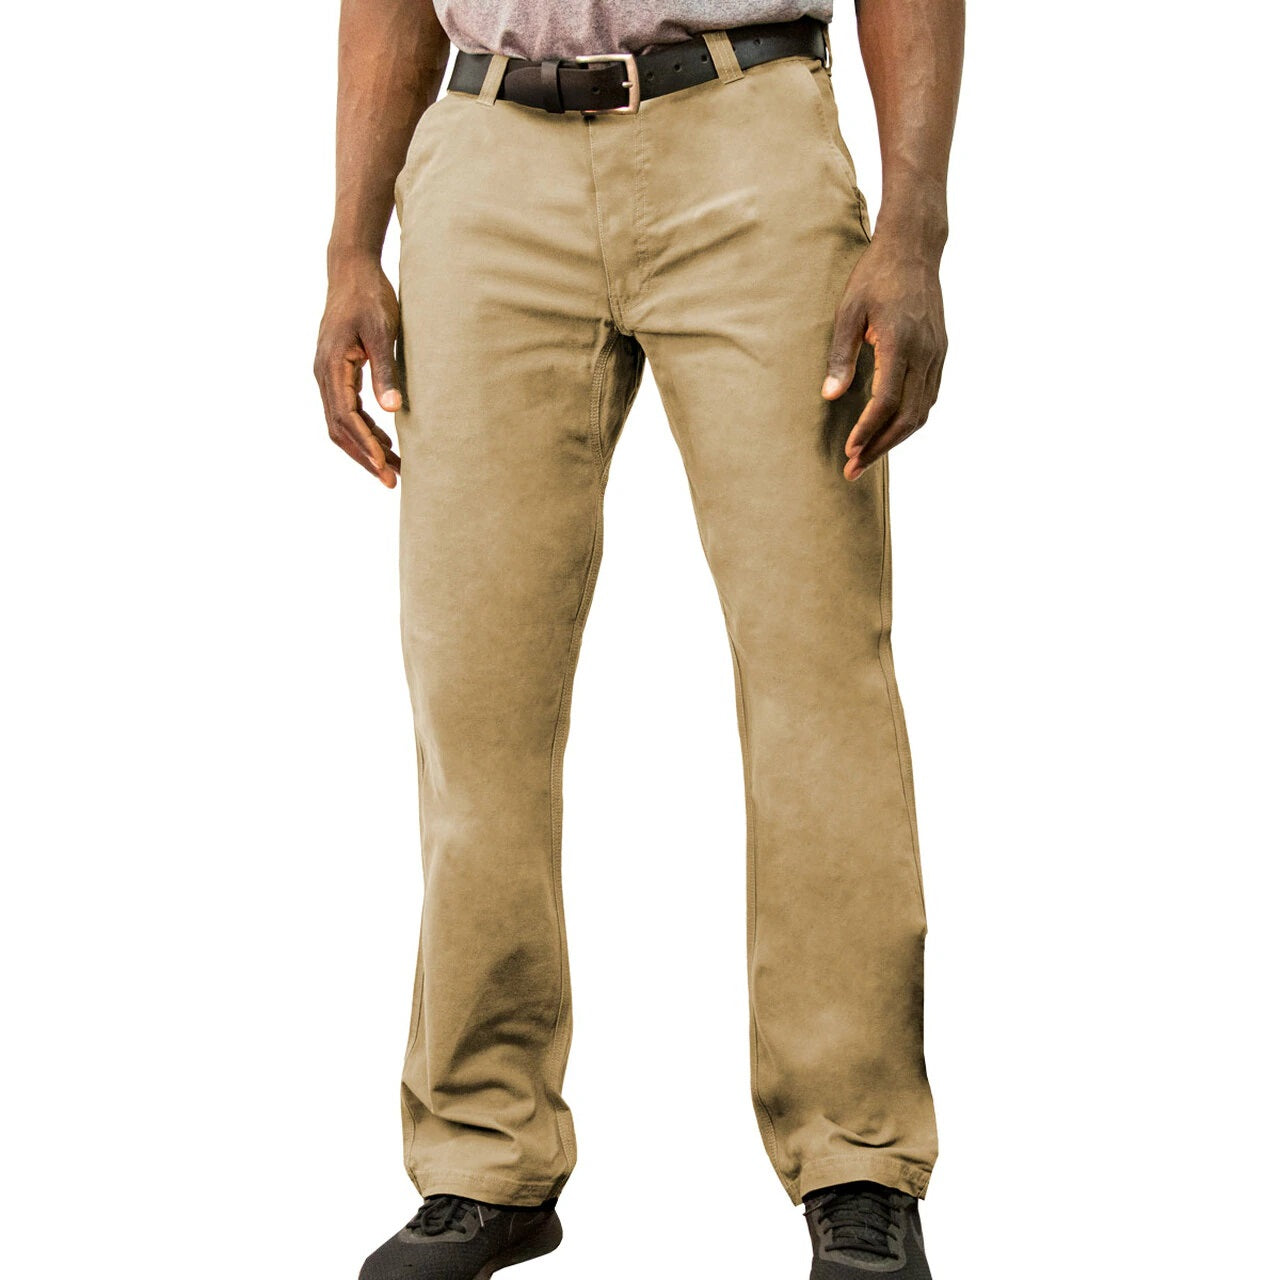 'KEY' Men's Bowman Flex Pant - Khaki